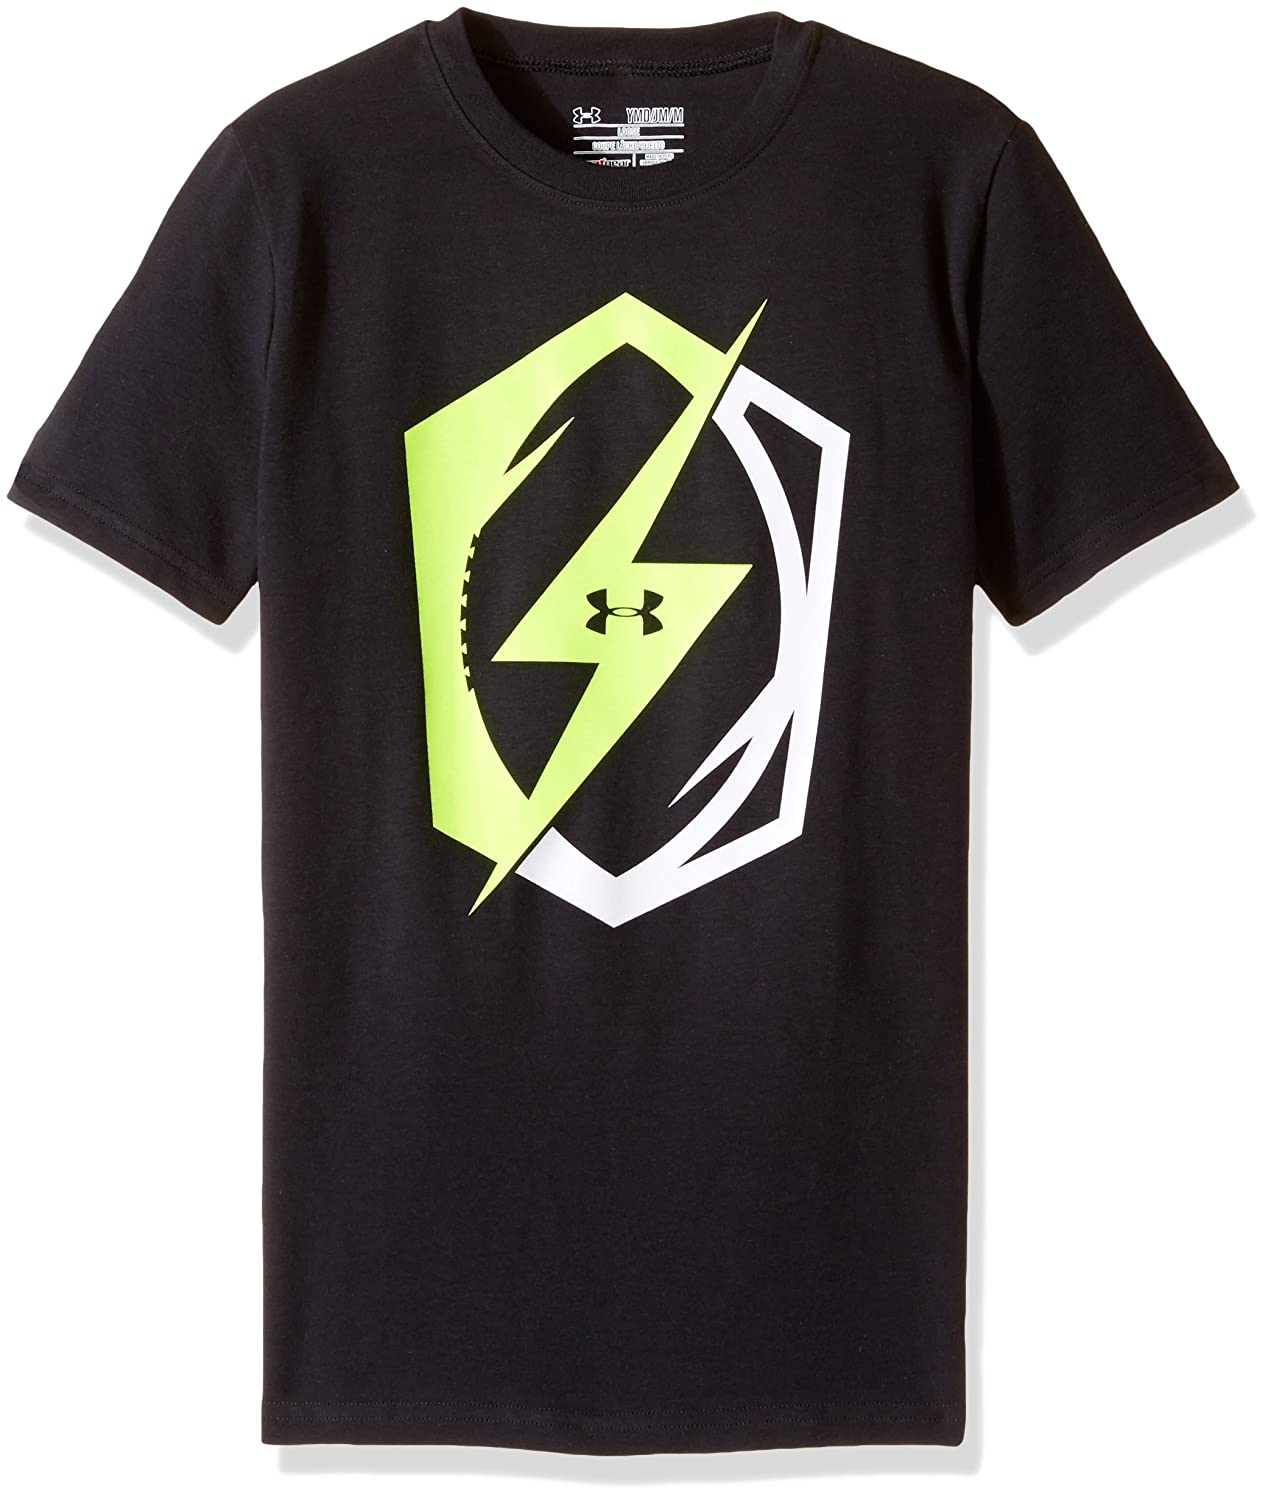 Under Armour Boys ' Pride of Football Tシャツ Youth X-Small ブラック B01FXRBQPW